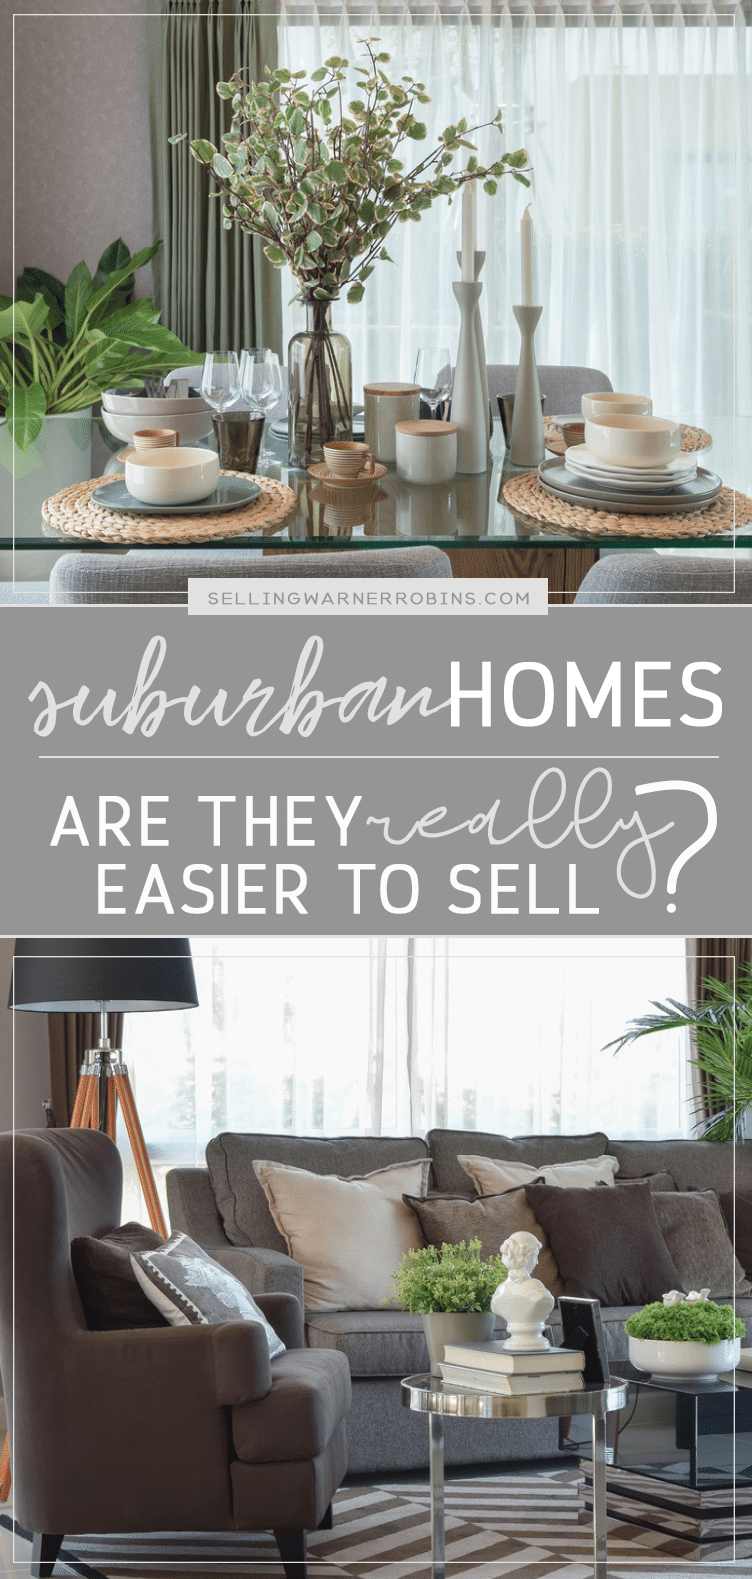 Are Suburban Homes Really Easier to Sell?